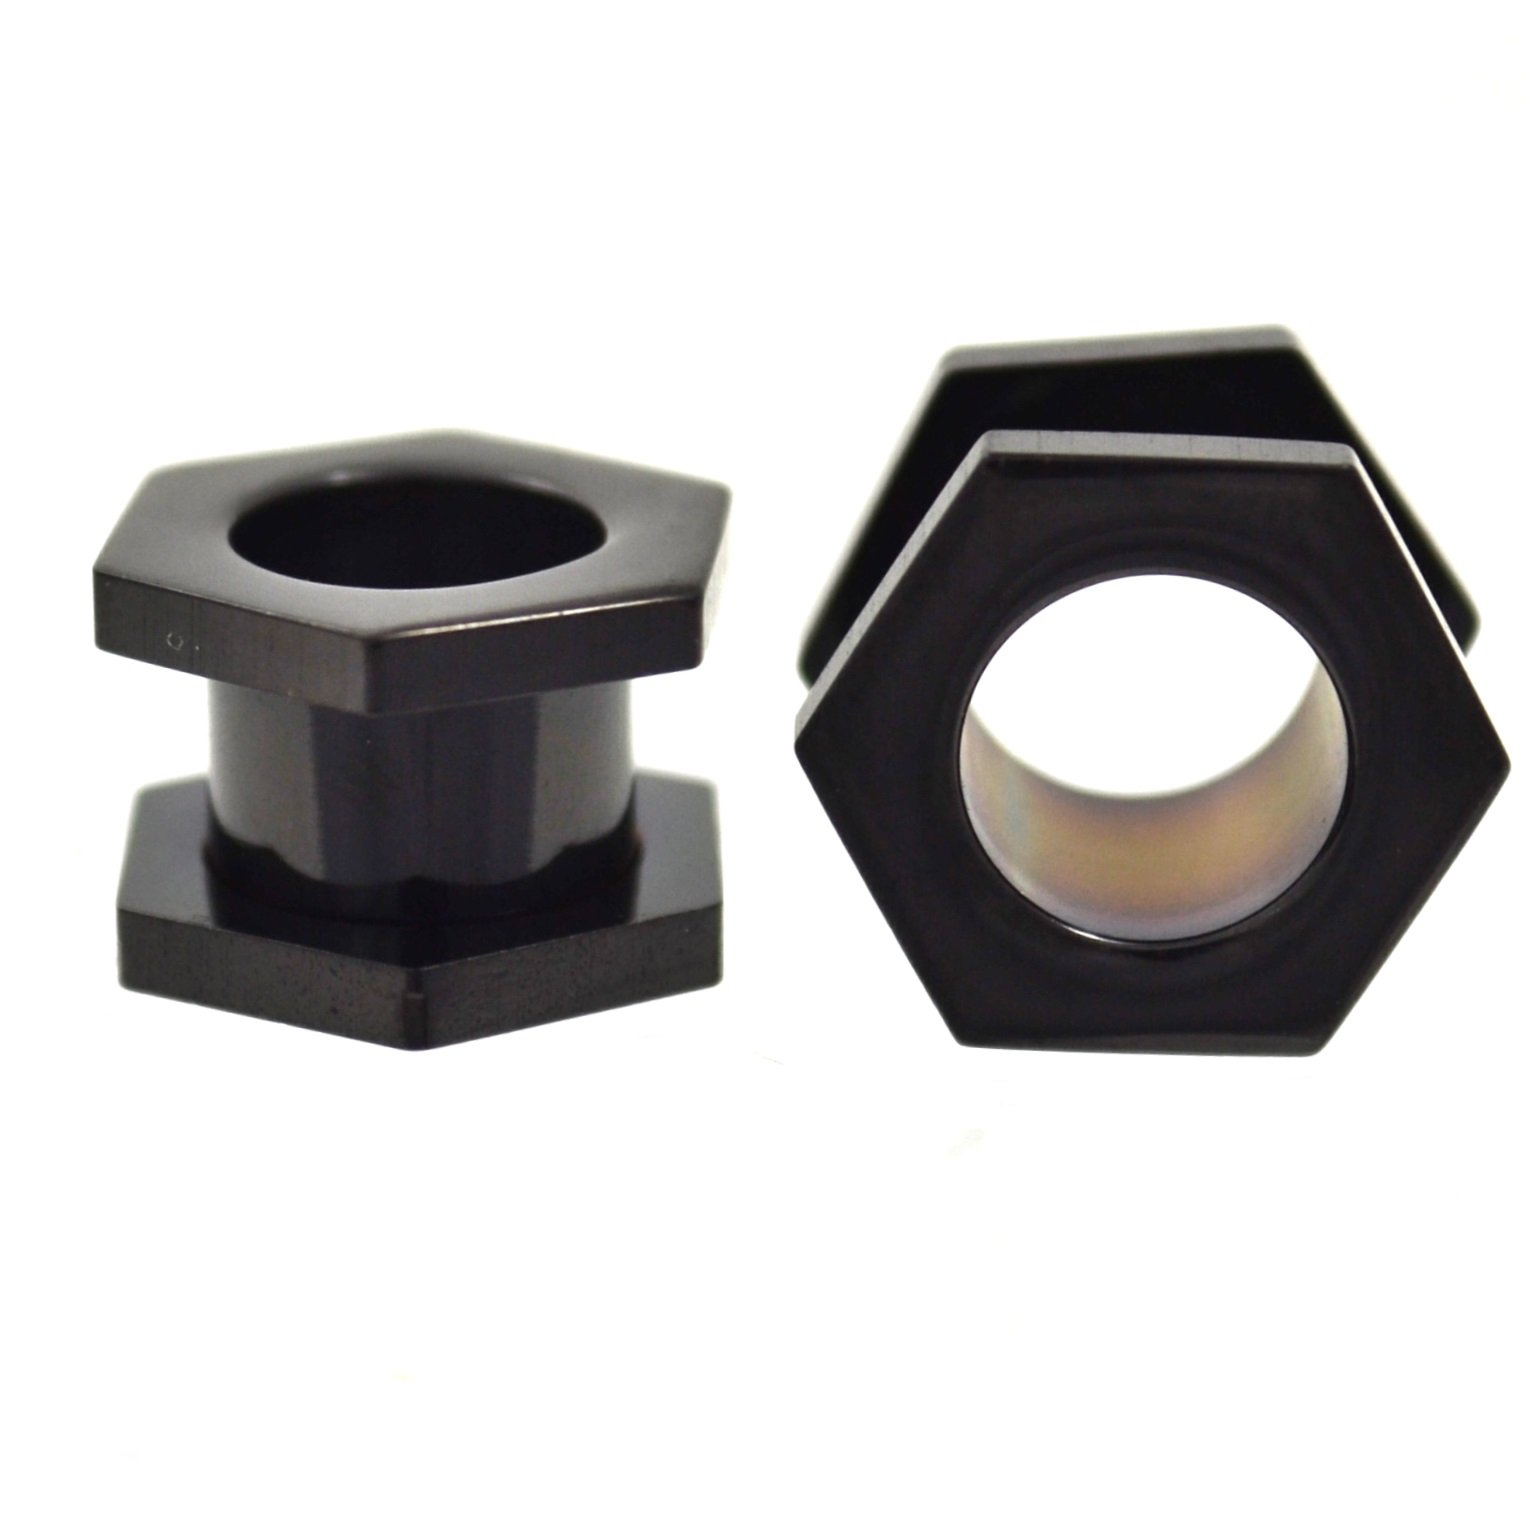 Pair of All Black Titanium Plated Hexagon Shaped End Ear Plugs Tunnels Screw Fit Gauges - 0G (8mm)